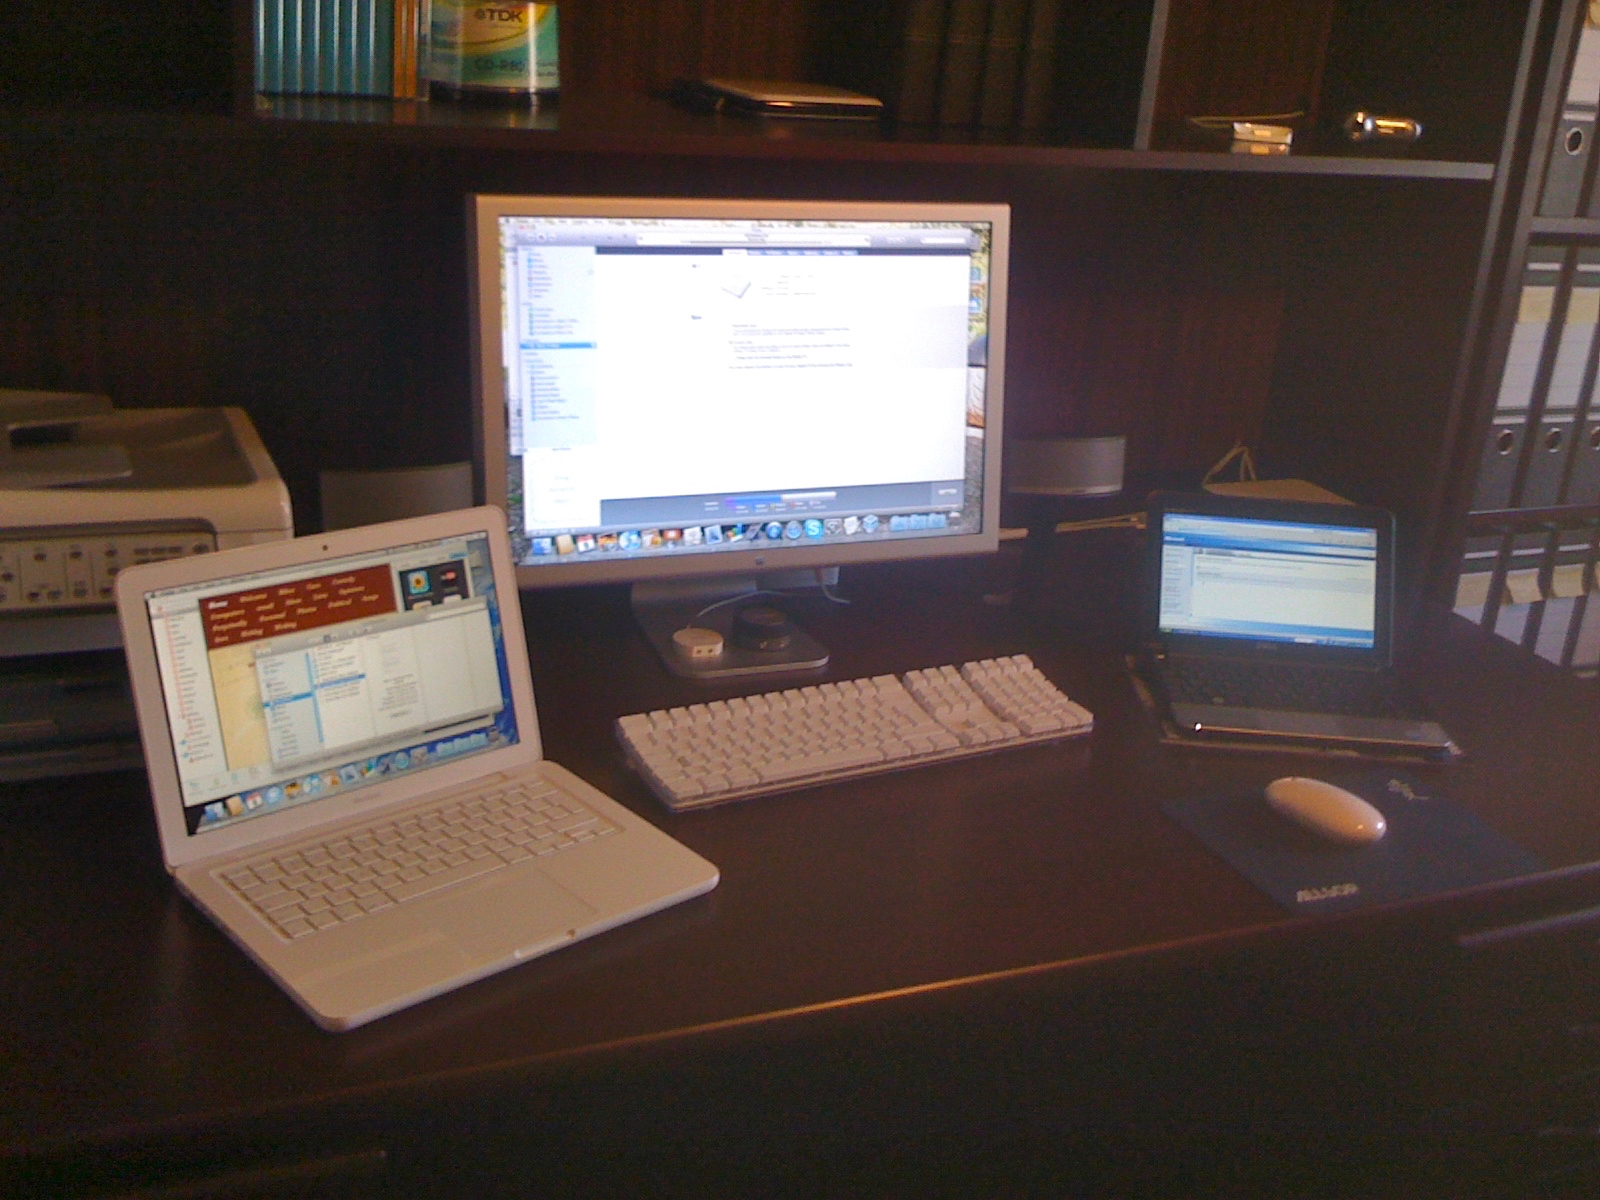 A white MacBook sits to the left of the Apple Cinema Display and on the right is a Dell Notebook